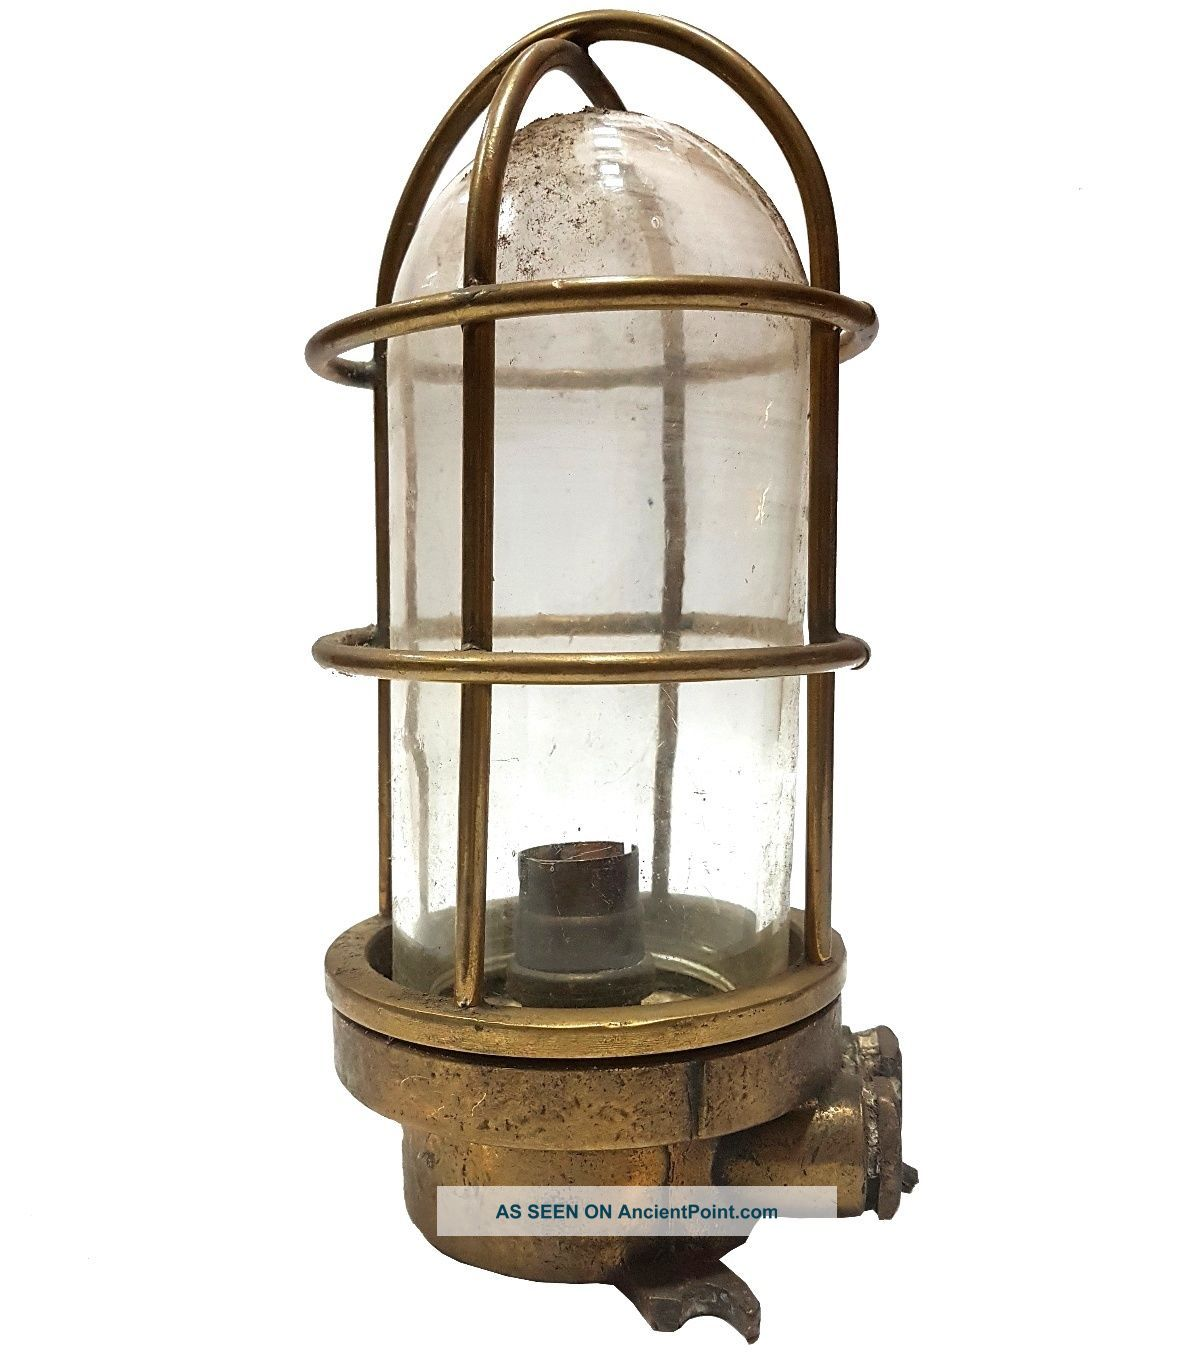 Nautical Vintage Maritime Antique Brass Bracket Passage Bulkhead Light Mc 021 Lamps & Lighting photo